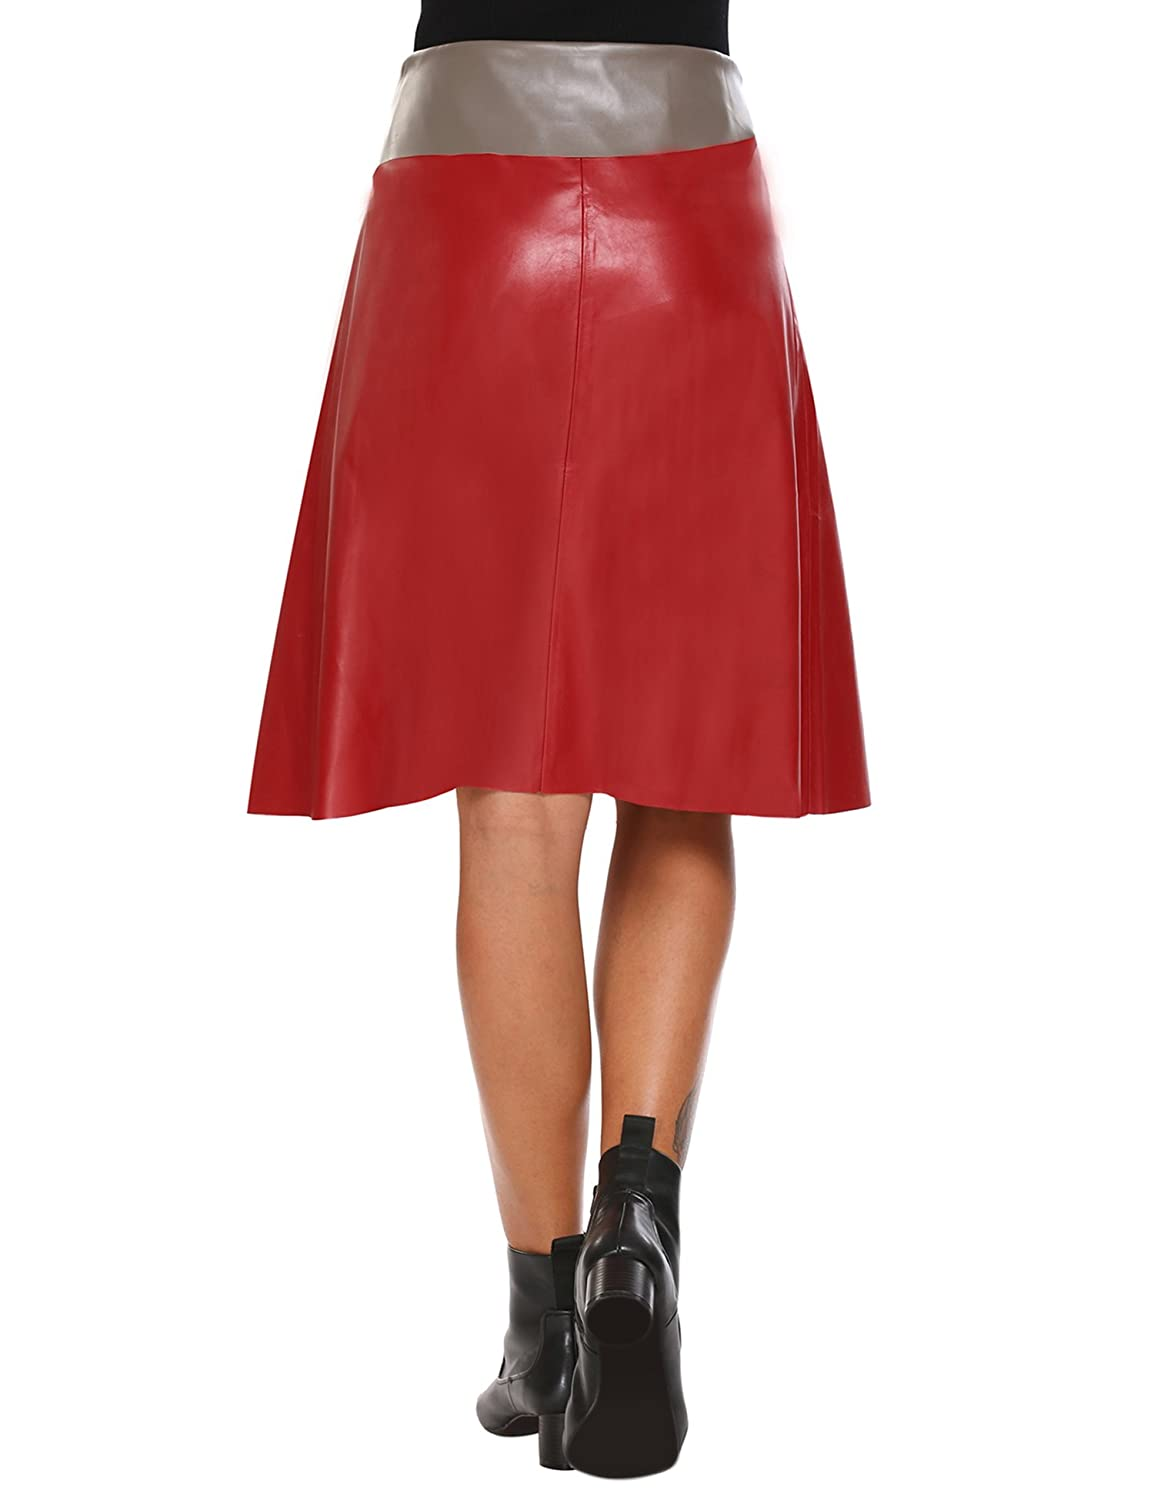 1a91e01b94483 Zeagoo Women Leather Skirt High Waisted A-Line Wrap Midi Skirts at Amazon  Women s Clothing store